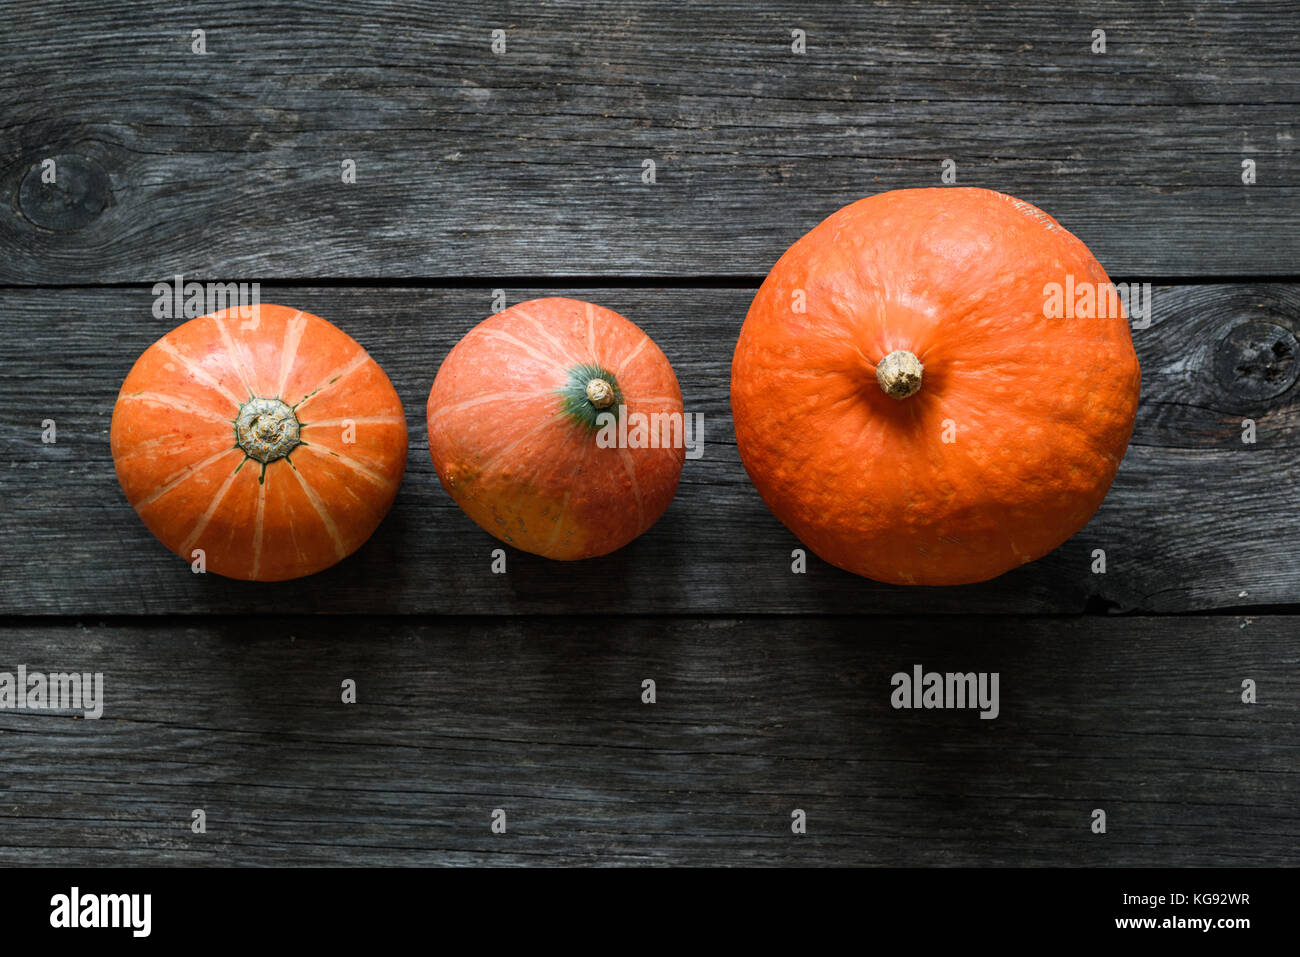 Autumn pumpkins harvest or Thanksgiving pumpkins on wooden table background. Top view - Stock Image